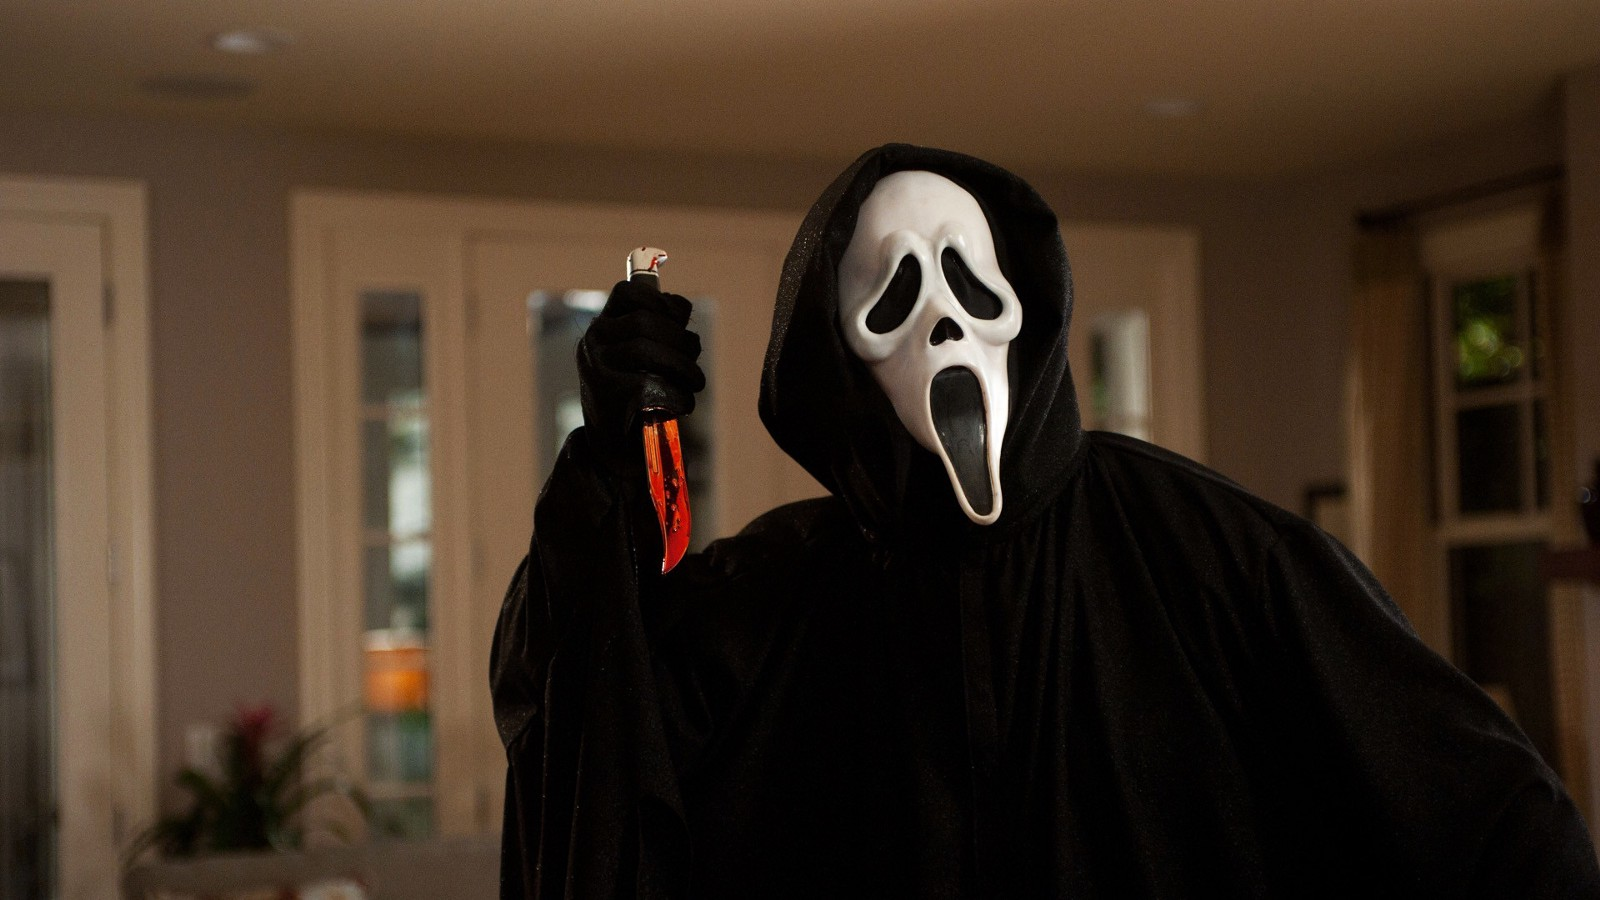 The Ghost Face Killer in Scream (1996)